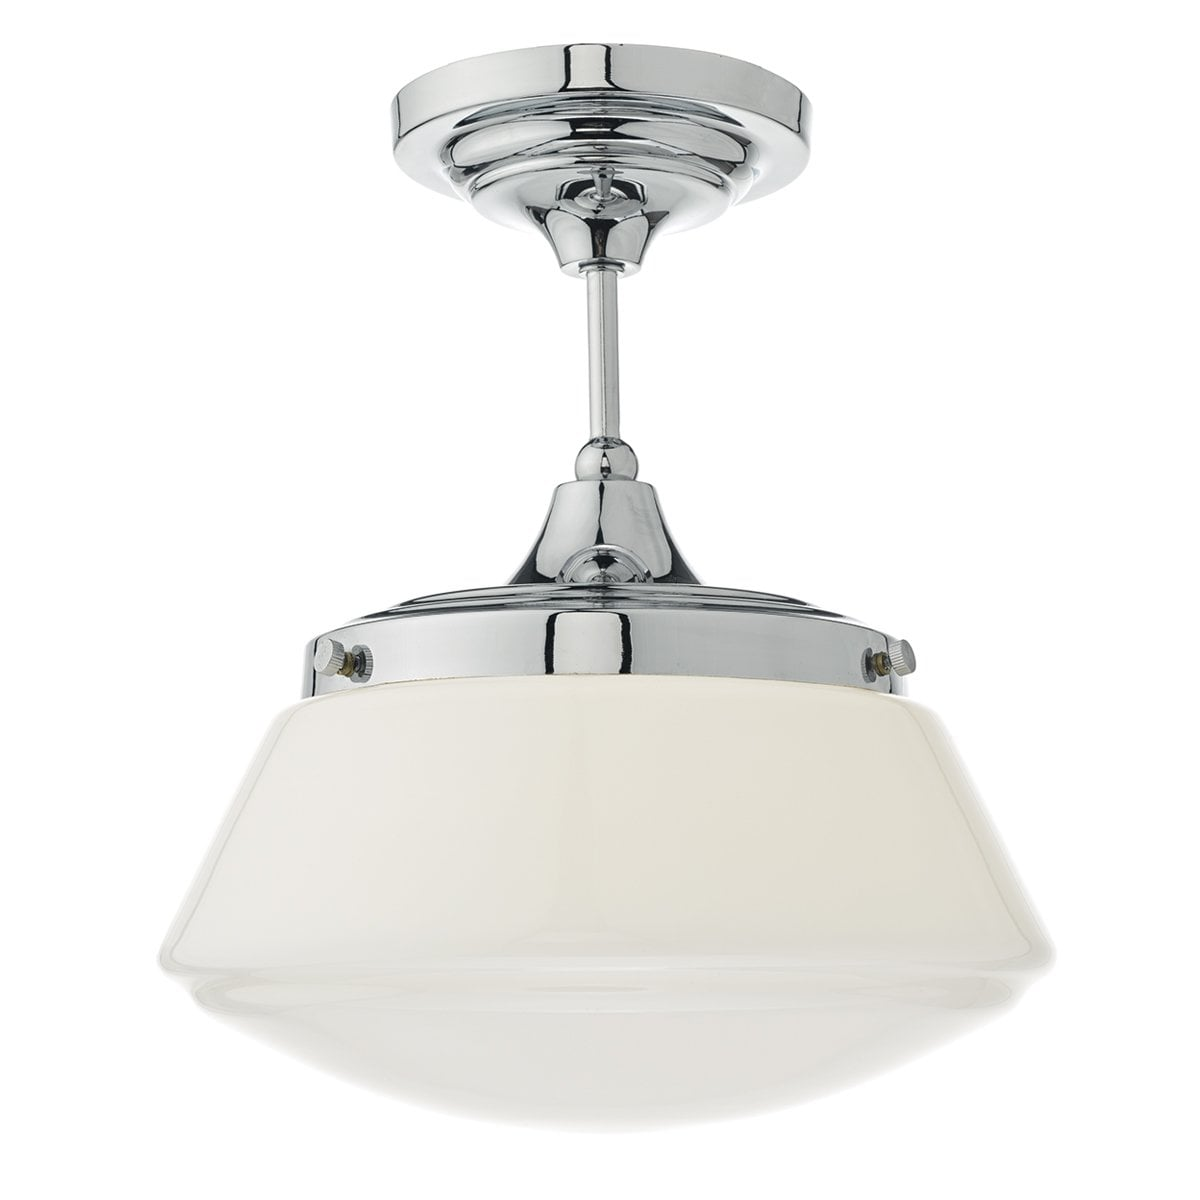 Dar CAD0150 Caden 1lt, Polished Chrome